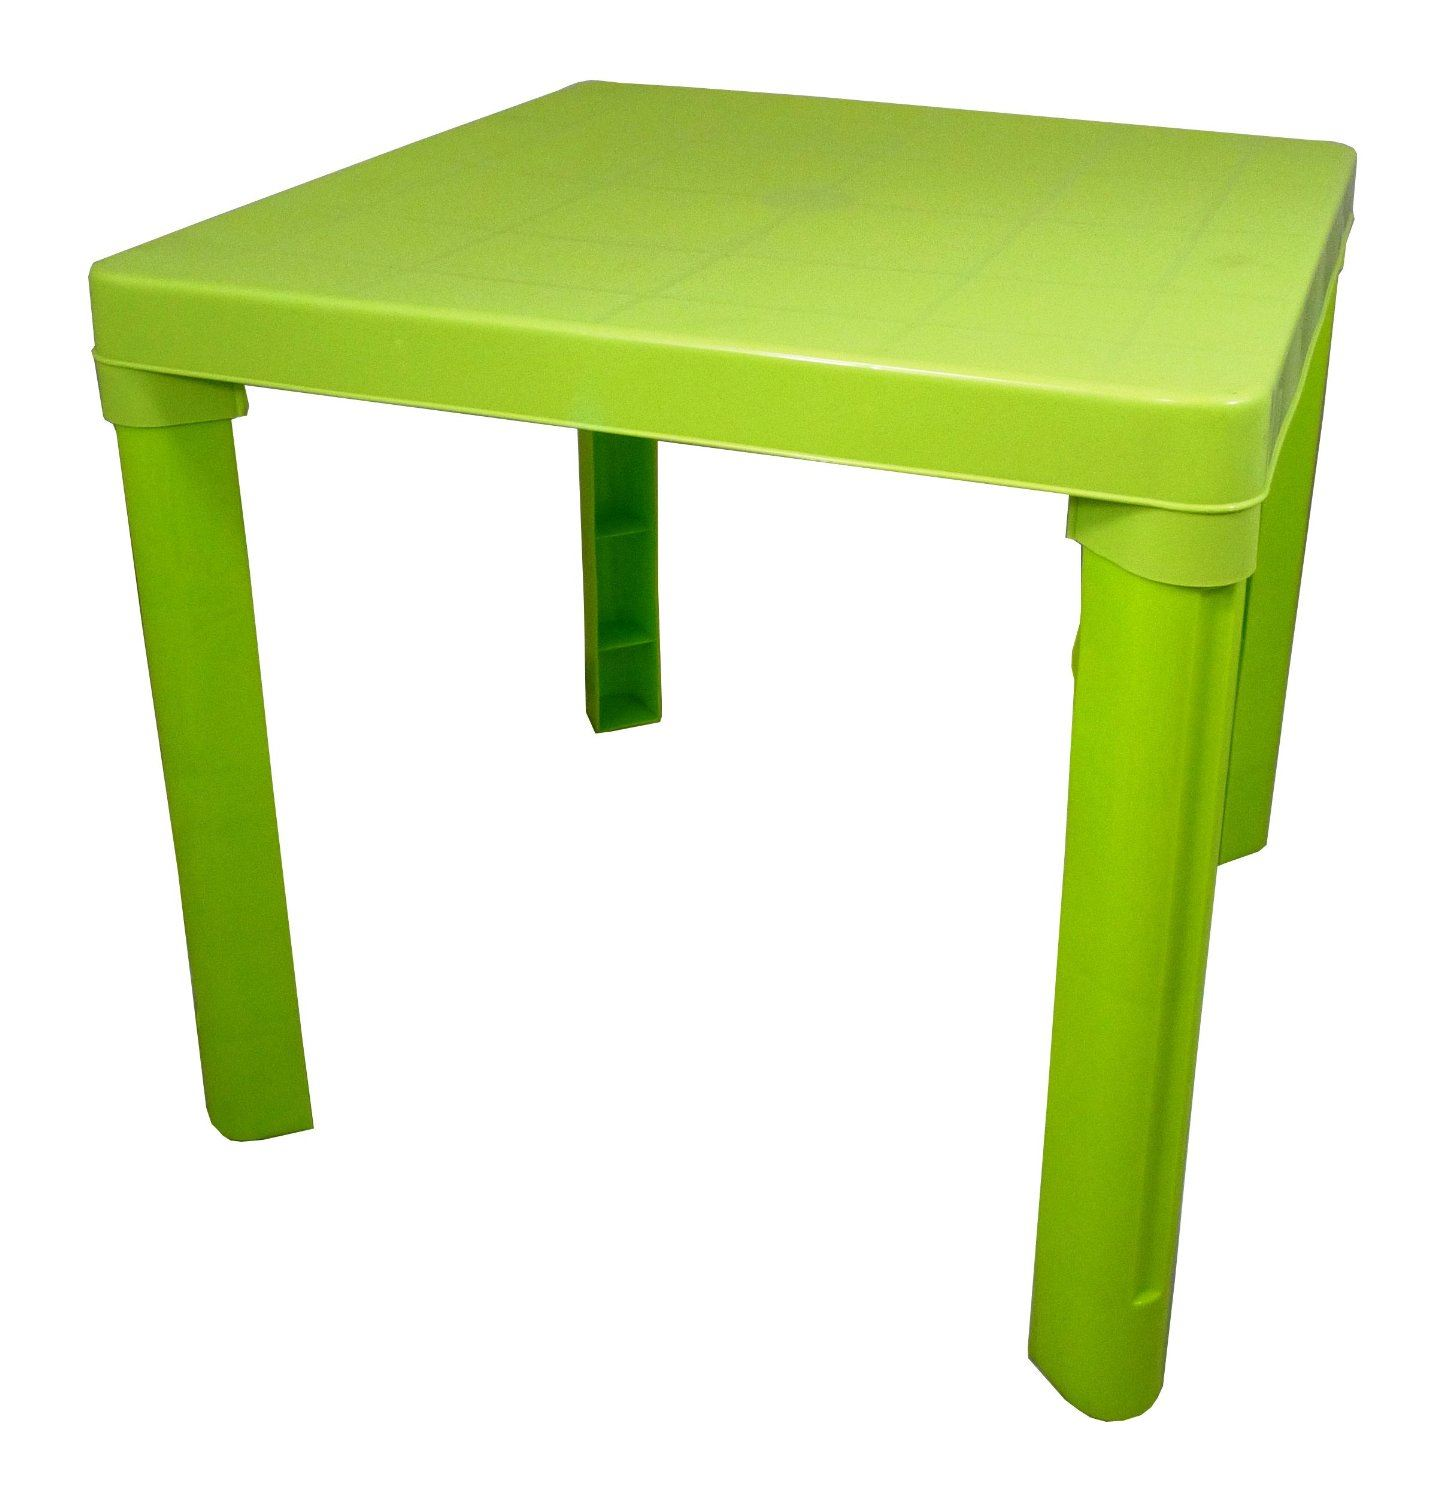 Toddler Table And Chairs Plastic Plastic Childrens Table And Chairs Set Coloured Nursery